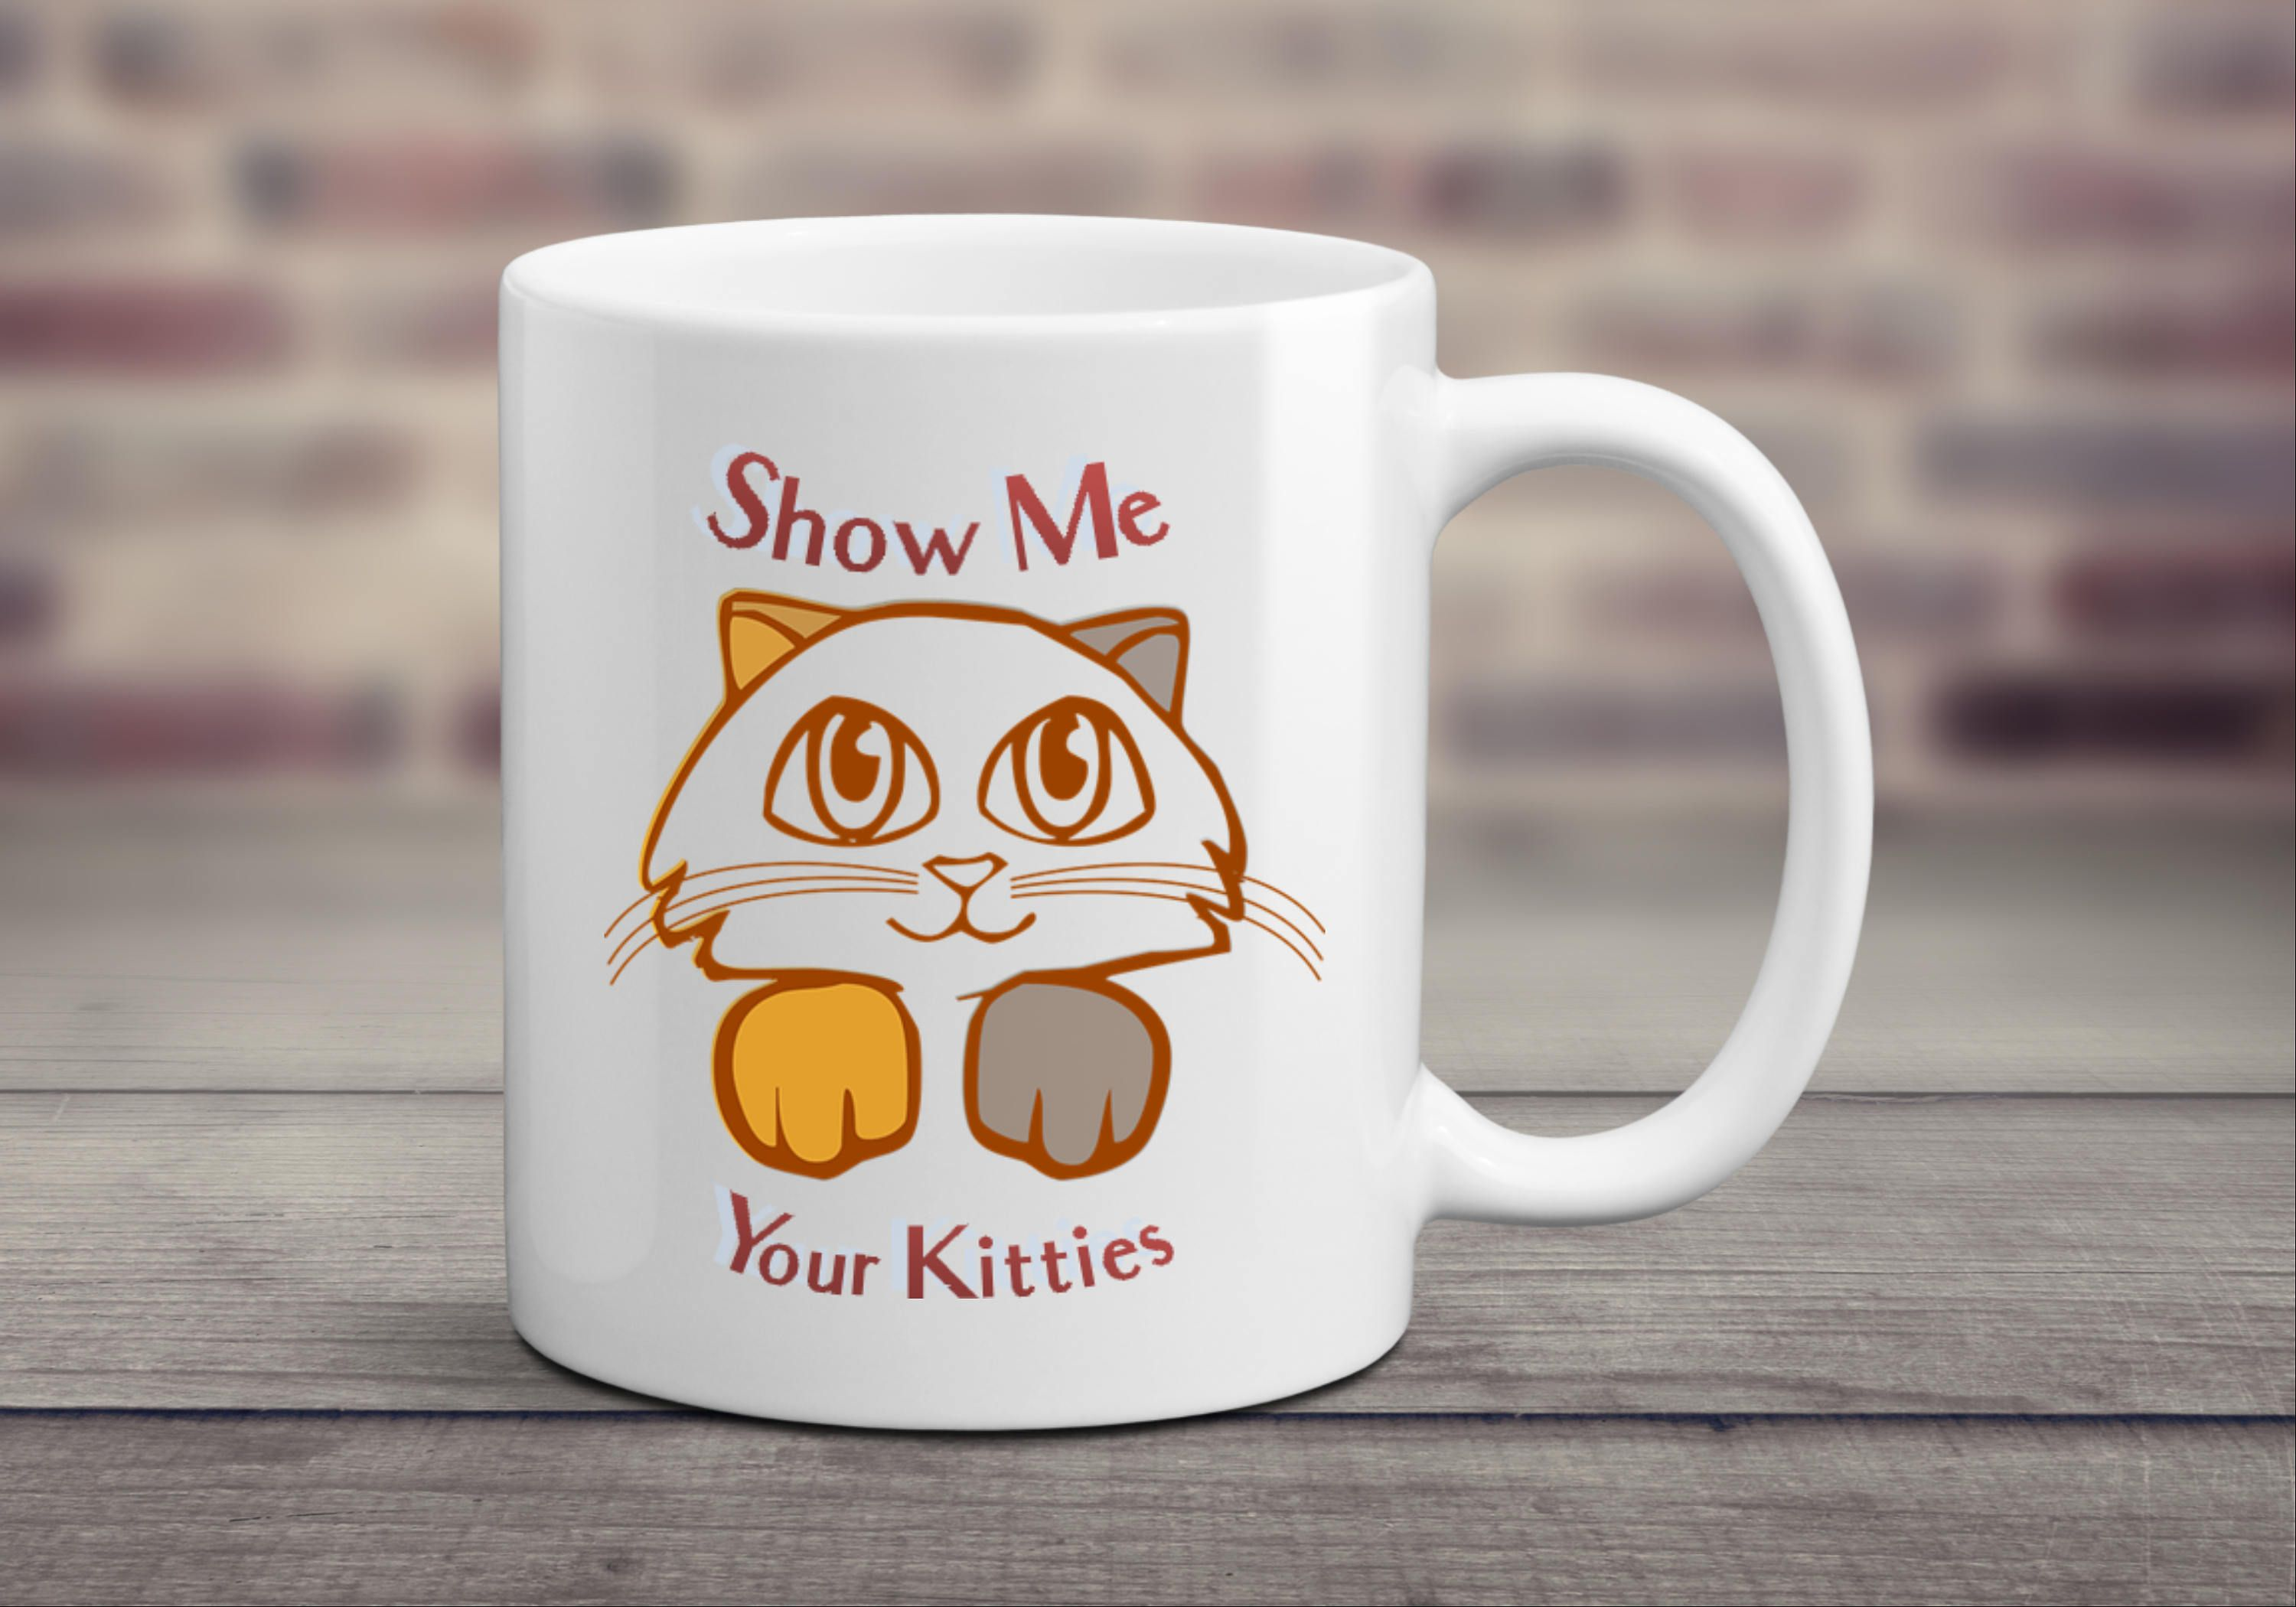 Show Me Your Kitties, Funny Cat Mug, Cat Lover Gift, Crazy